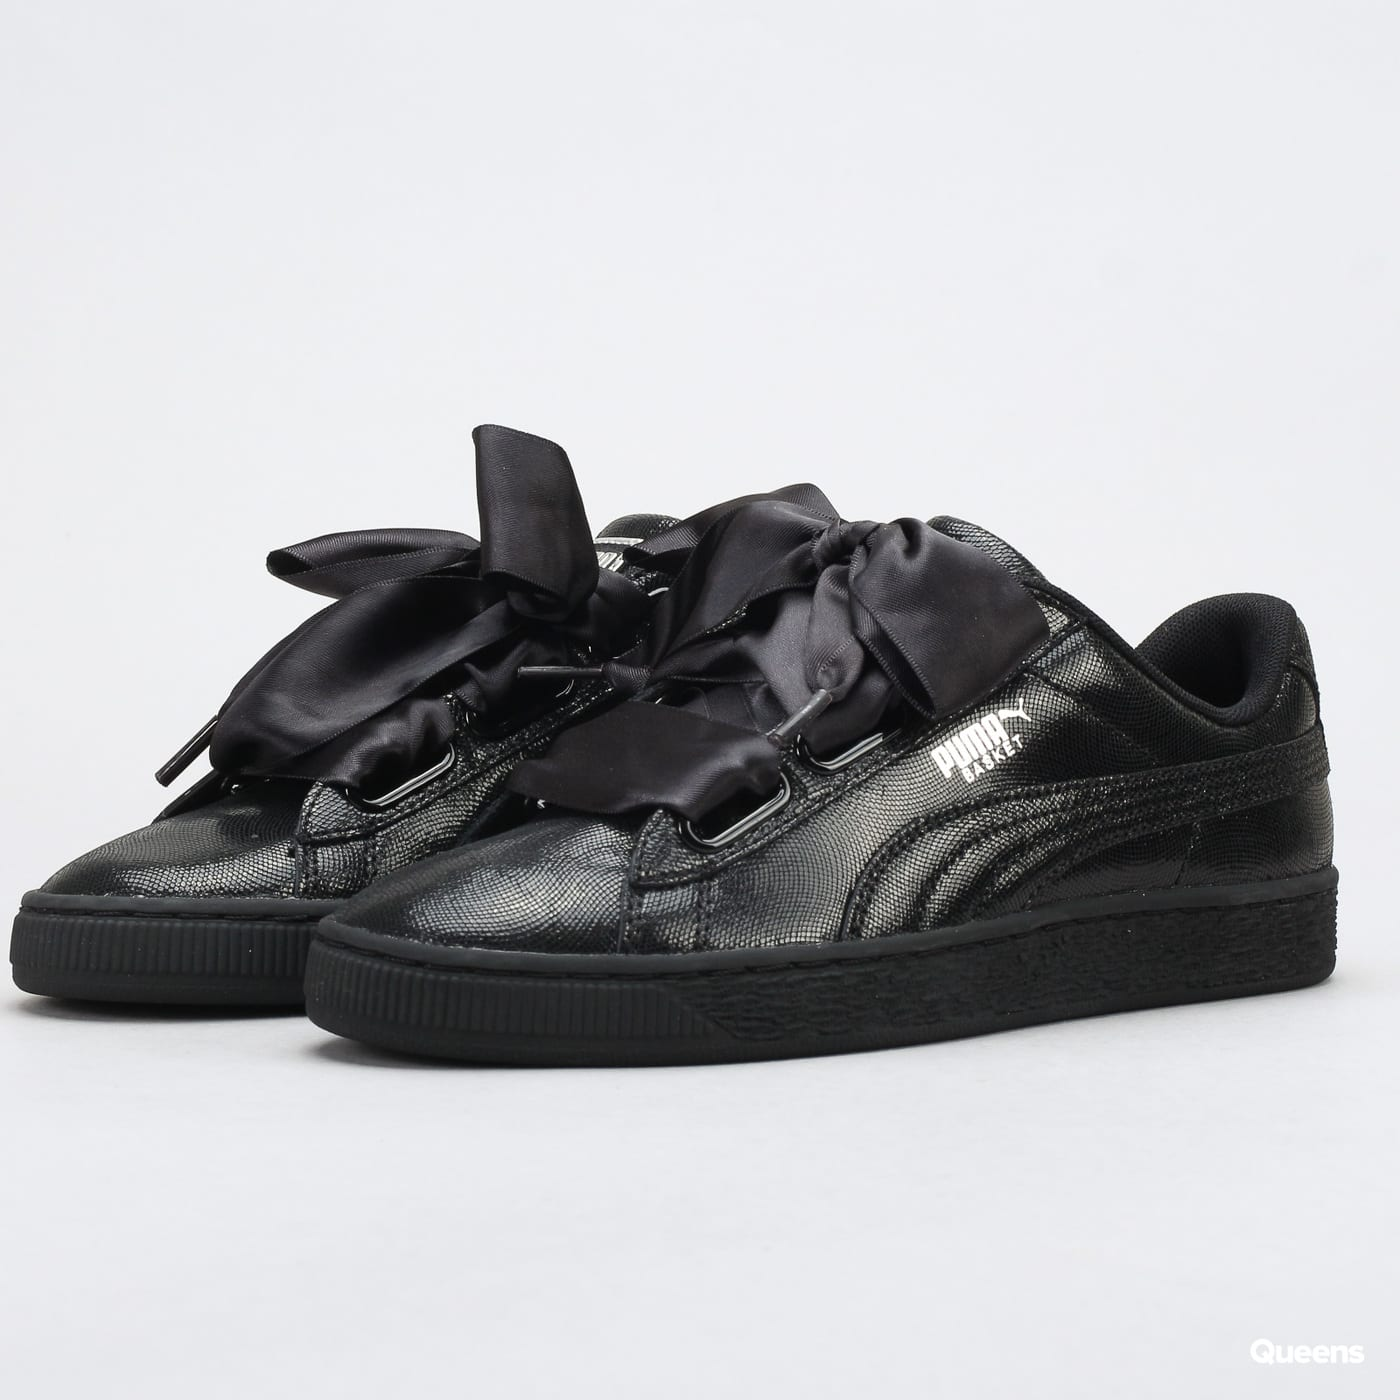 san francisco 9794b 25a8c Puma Basket Heart NS Wn's puma black - puma black